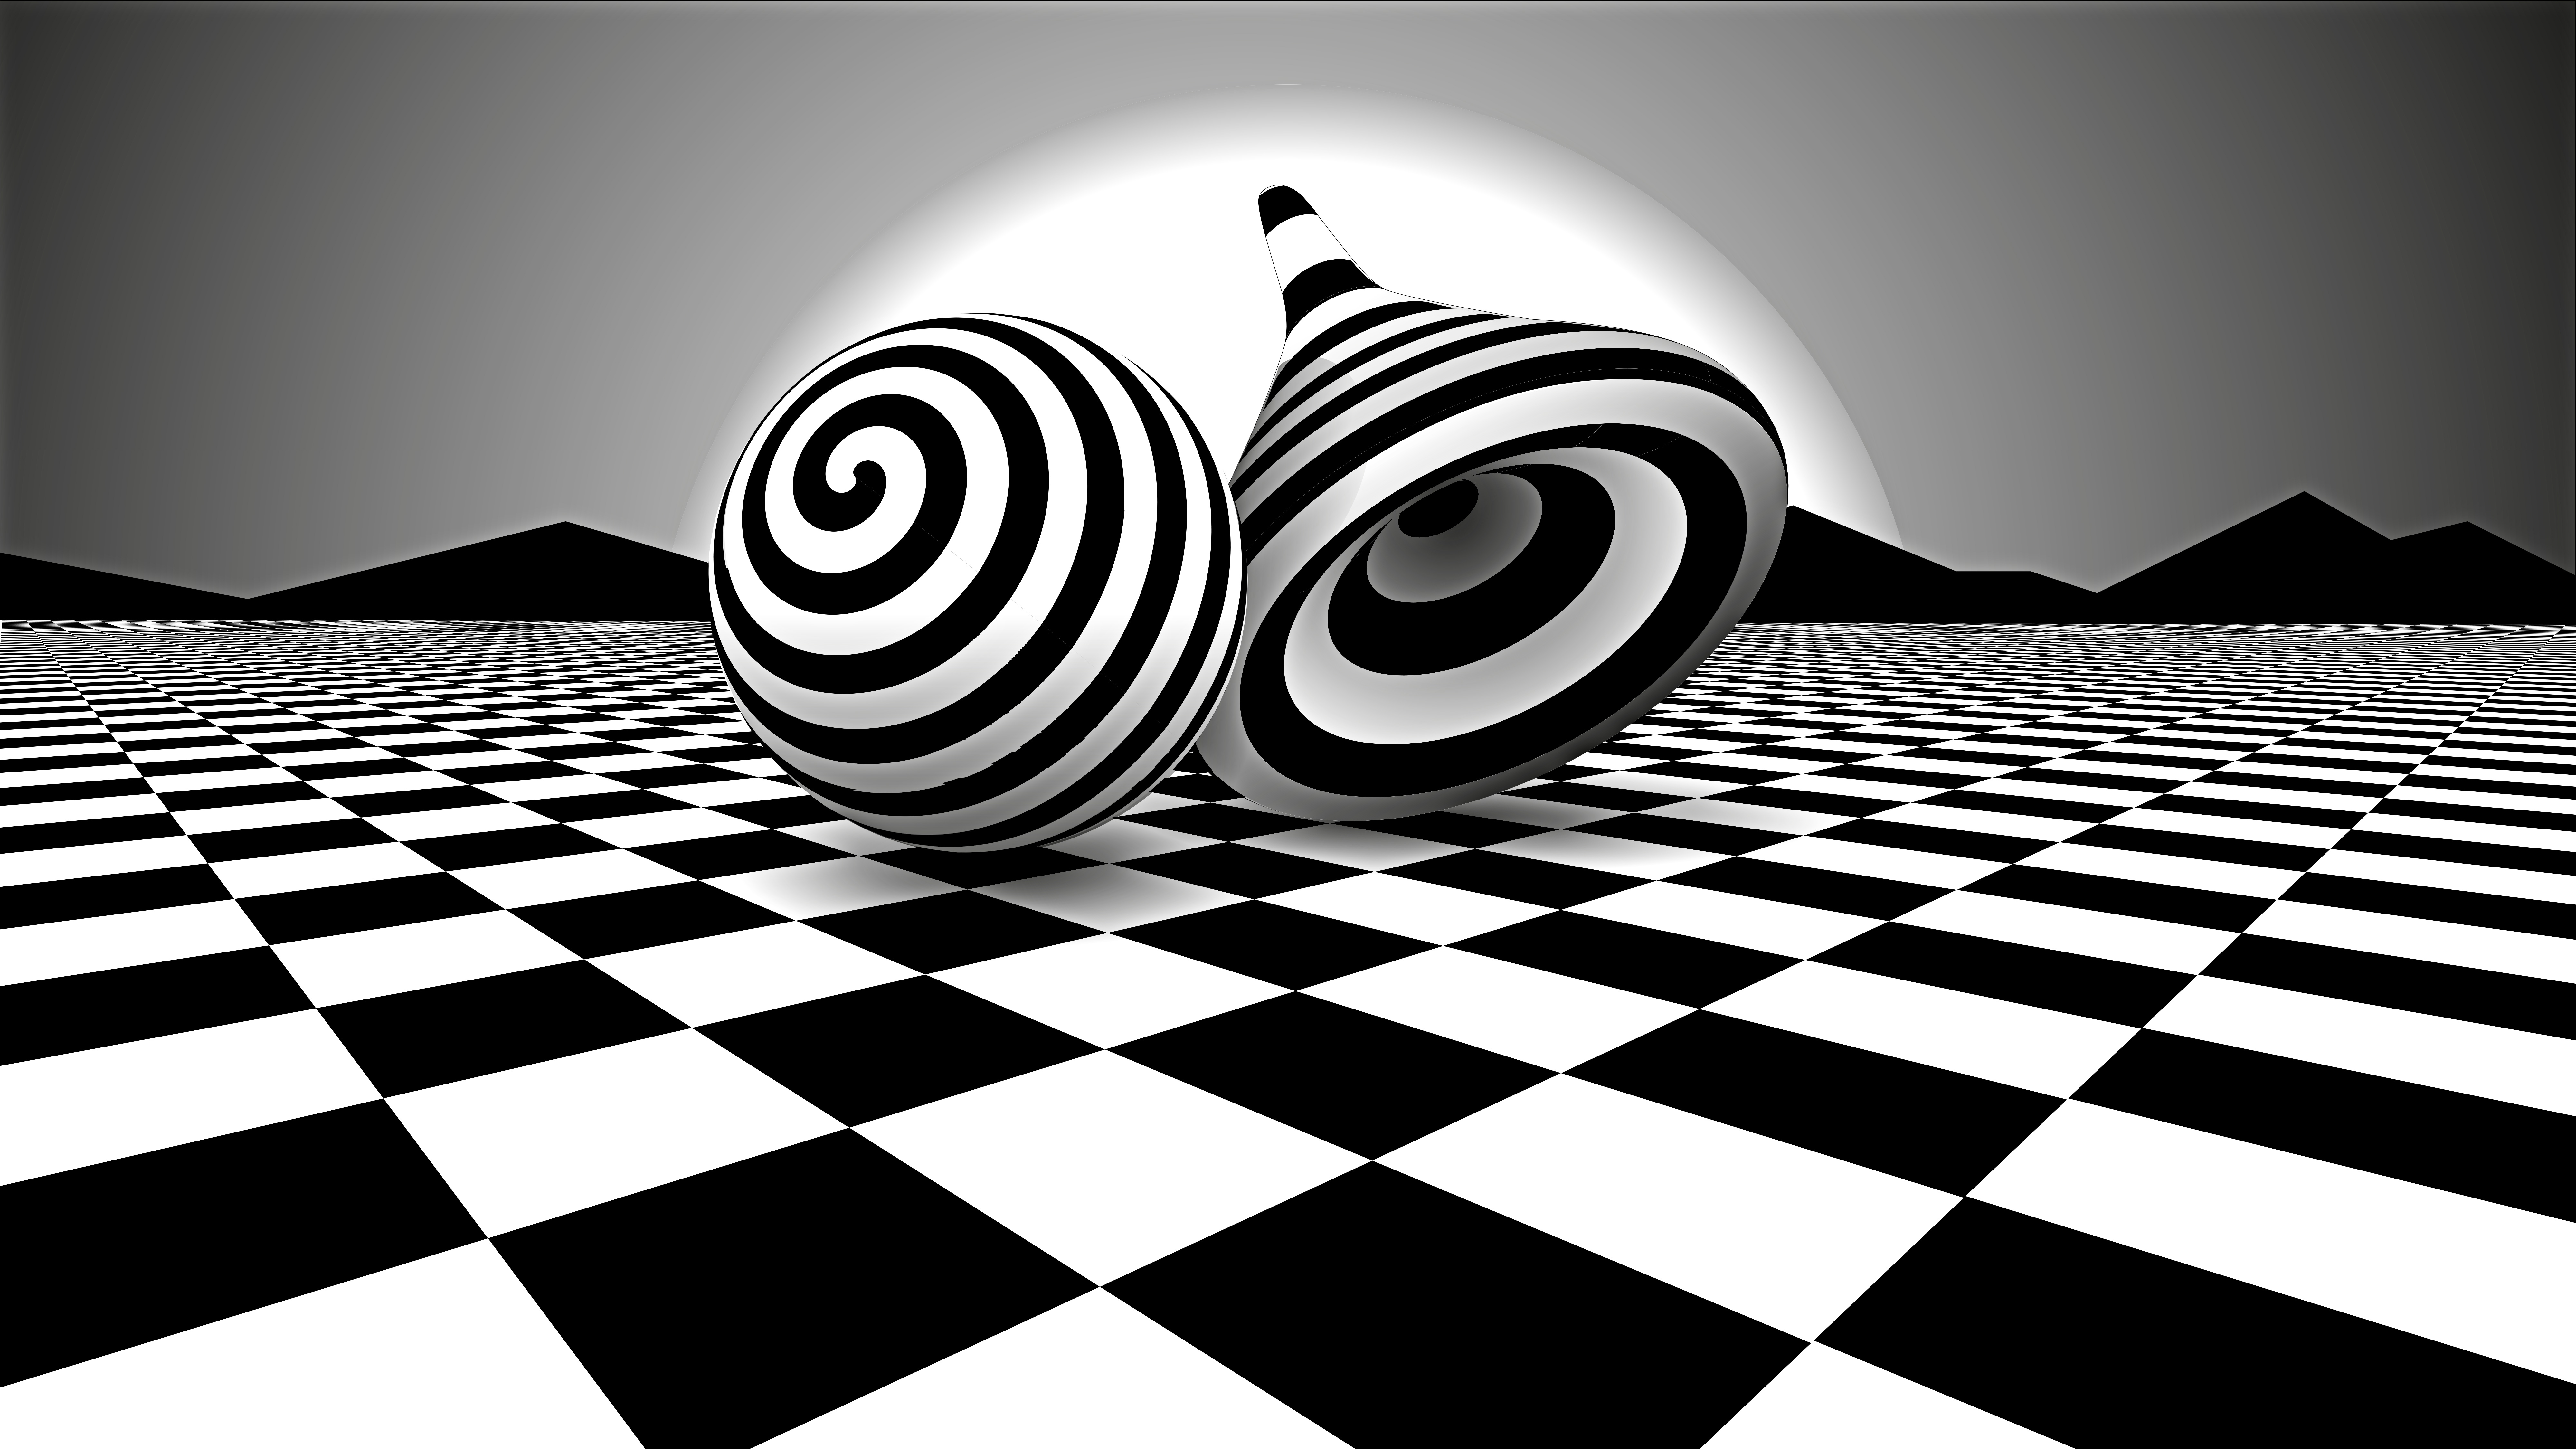 Black white optical illusion hd 3d 4k wallpapers images for Black and white wallpaper 3d